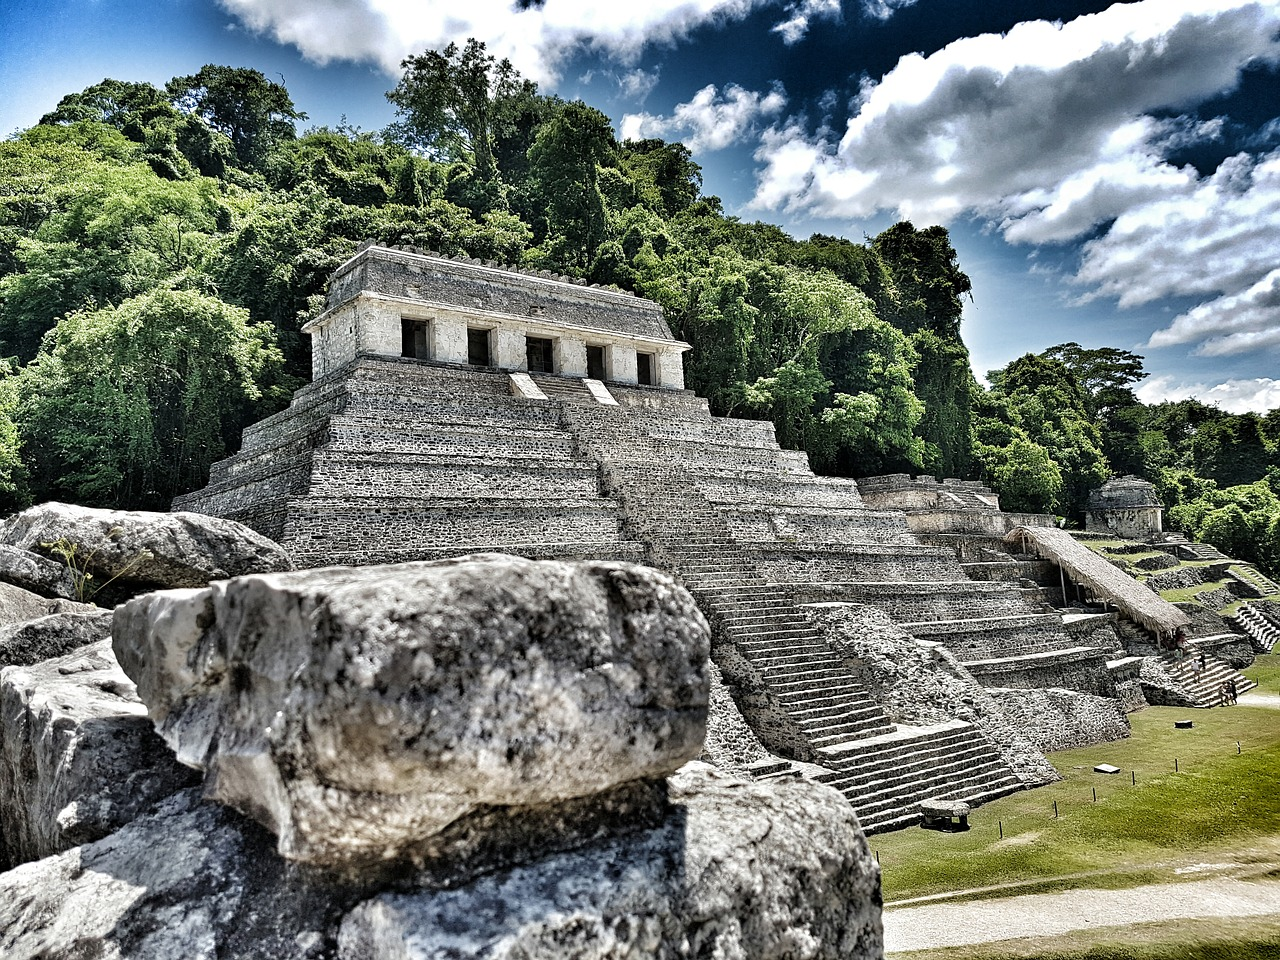 The Sarcophagus of Pakal and the Astronaut of Palenque-The Temple of Inscriptions